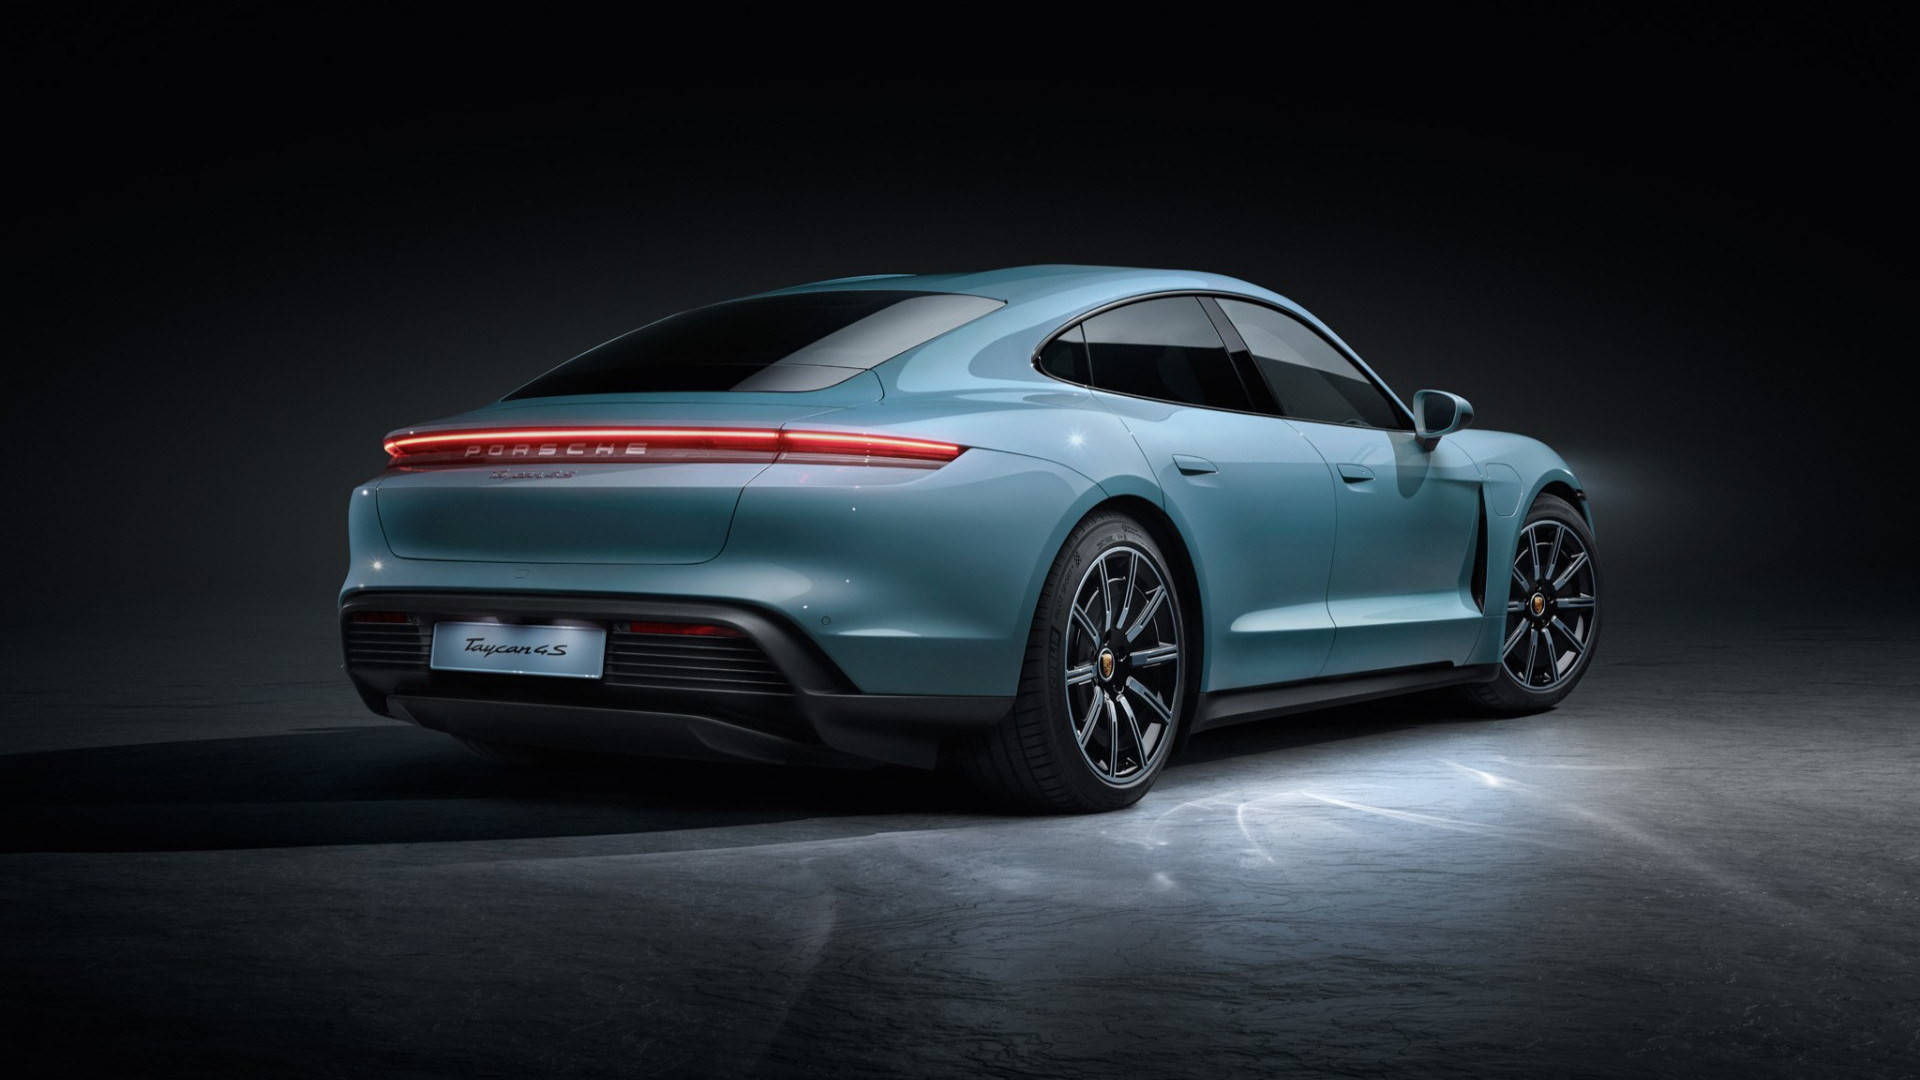 New Porsche Taycan 4S unveiled with £83000 price